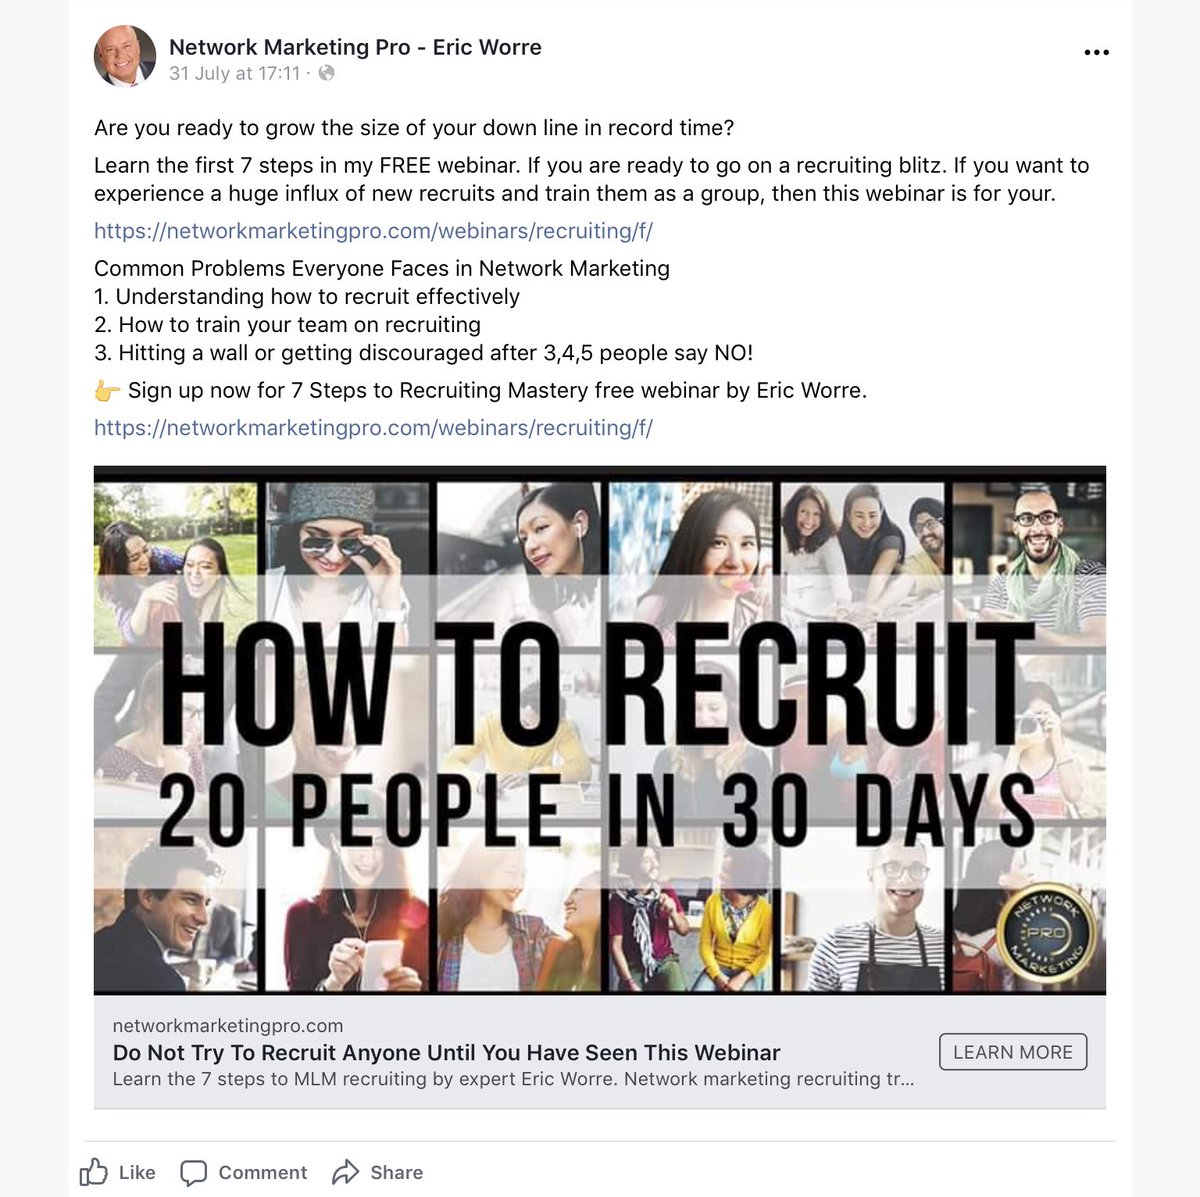 That Absolutely Isnt The Agenda Of Networkmarketing Scam Lies Snakeloil AntiMLMmovement Tradingstandardspictwitter Im8NC6quo3